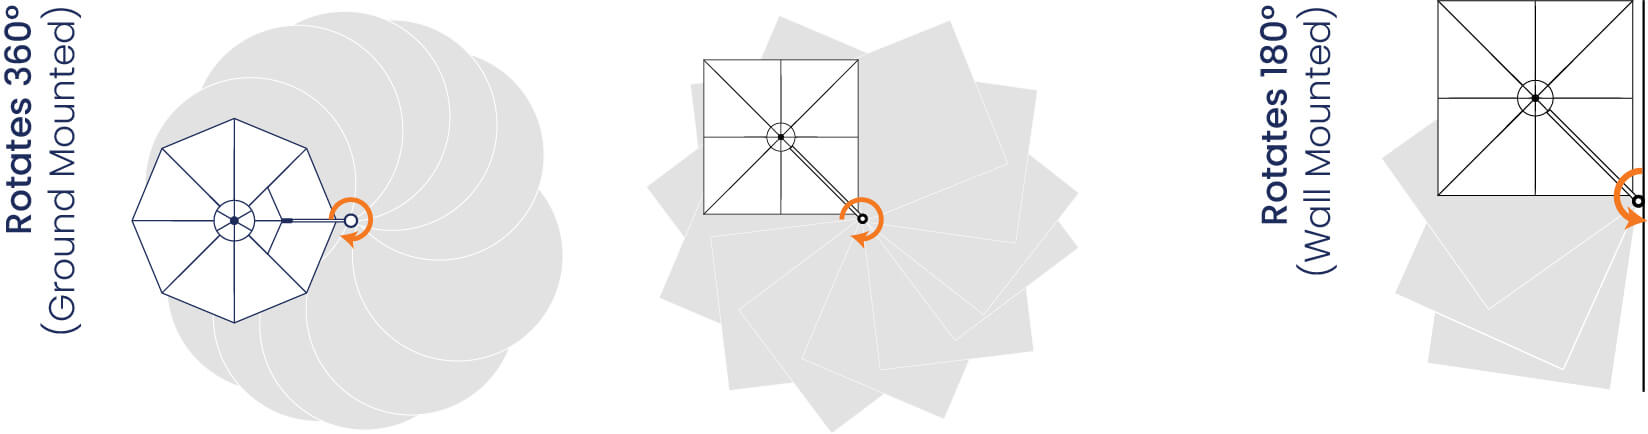 Visualization for umbrella rotates 360 degrees